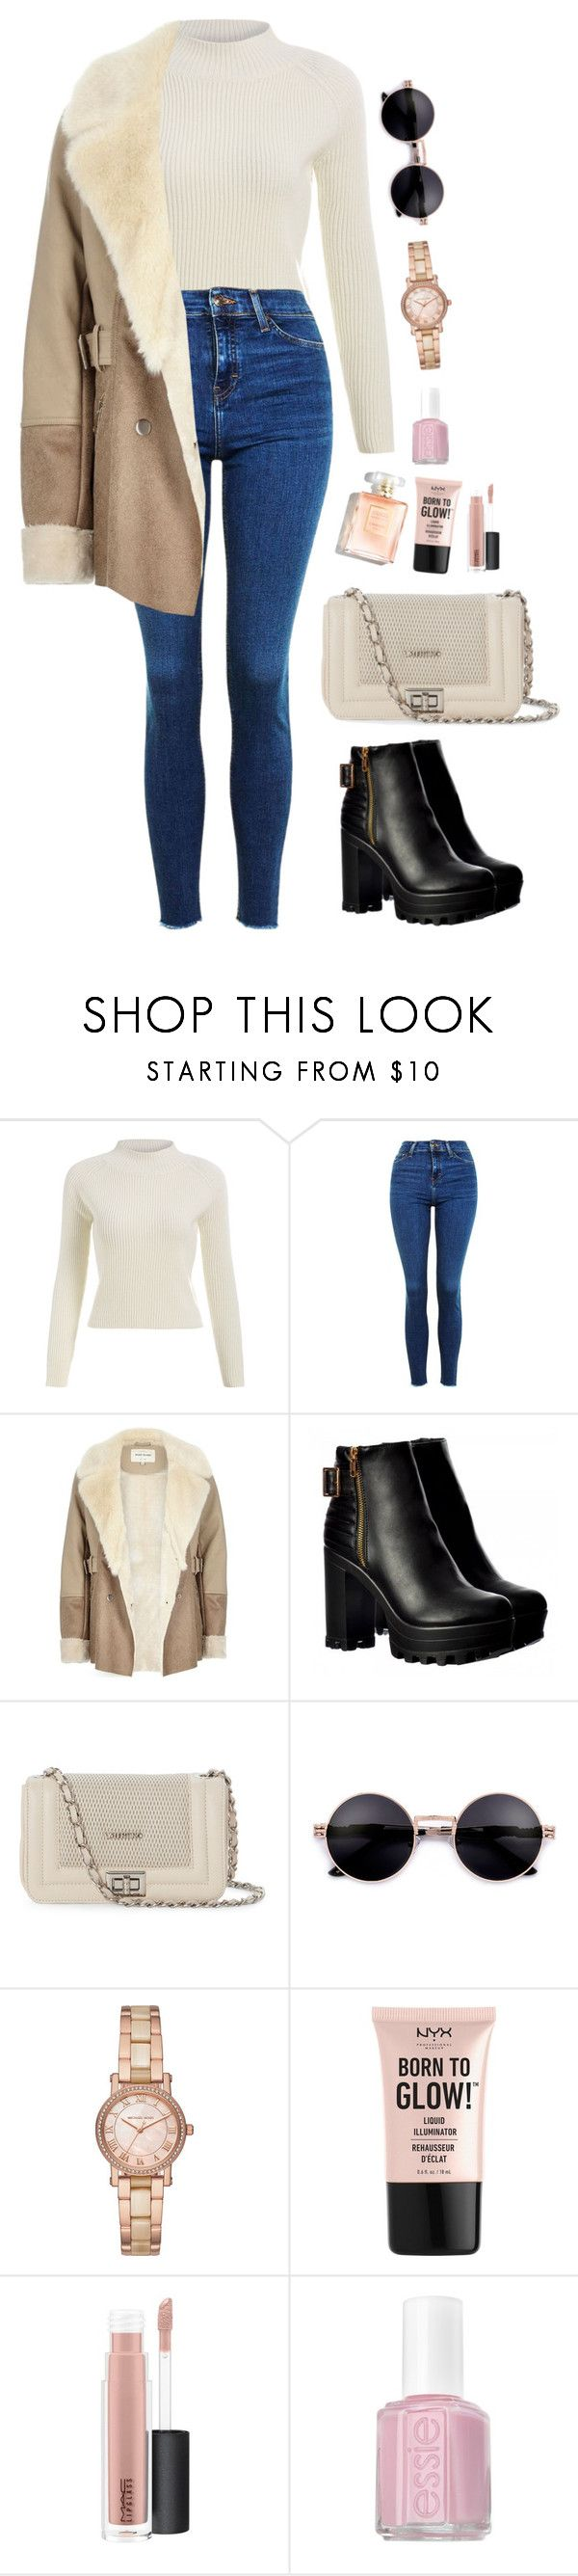 """Long time no see."" by krys-imvu ❤ liked on Polyvore featuring Topshop, River Island, Mario Valentino, Michael Kors, NYX, MAC Cosmetics and Essie"